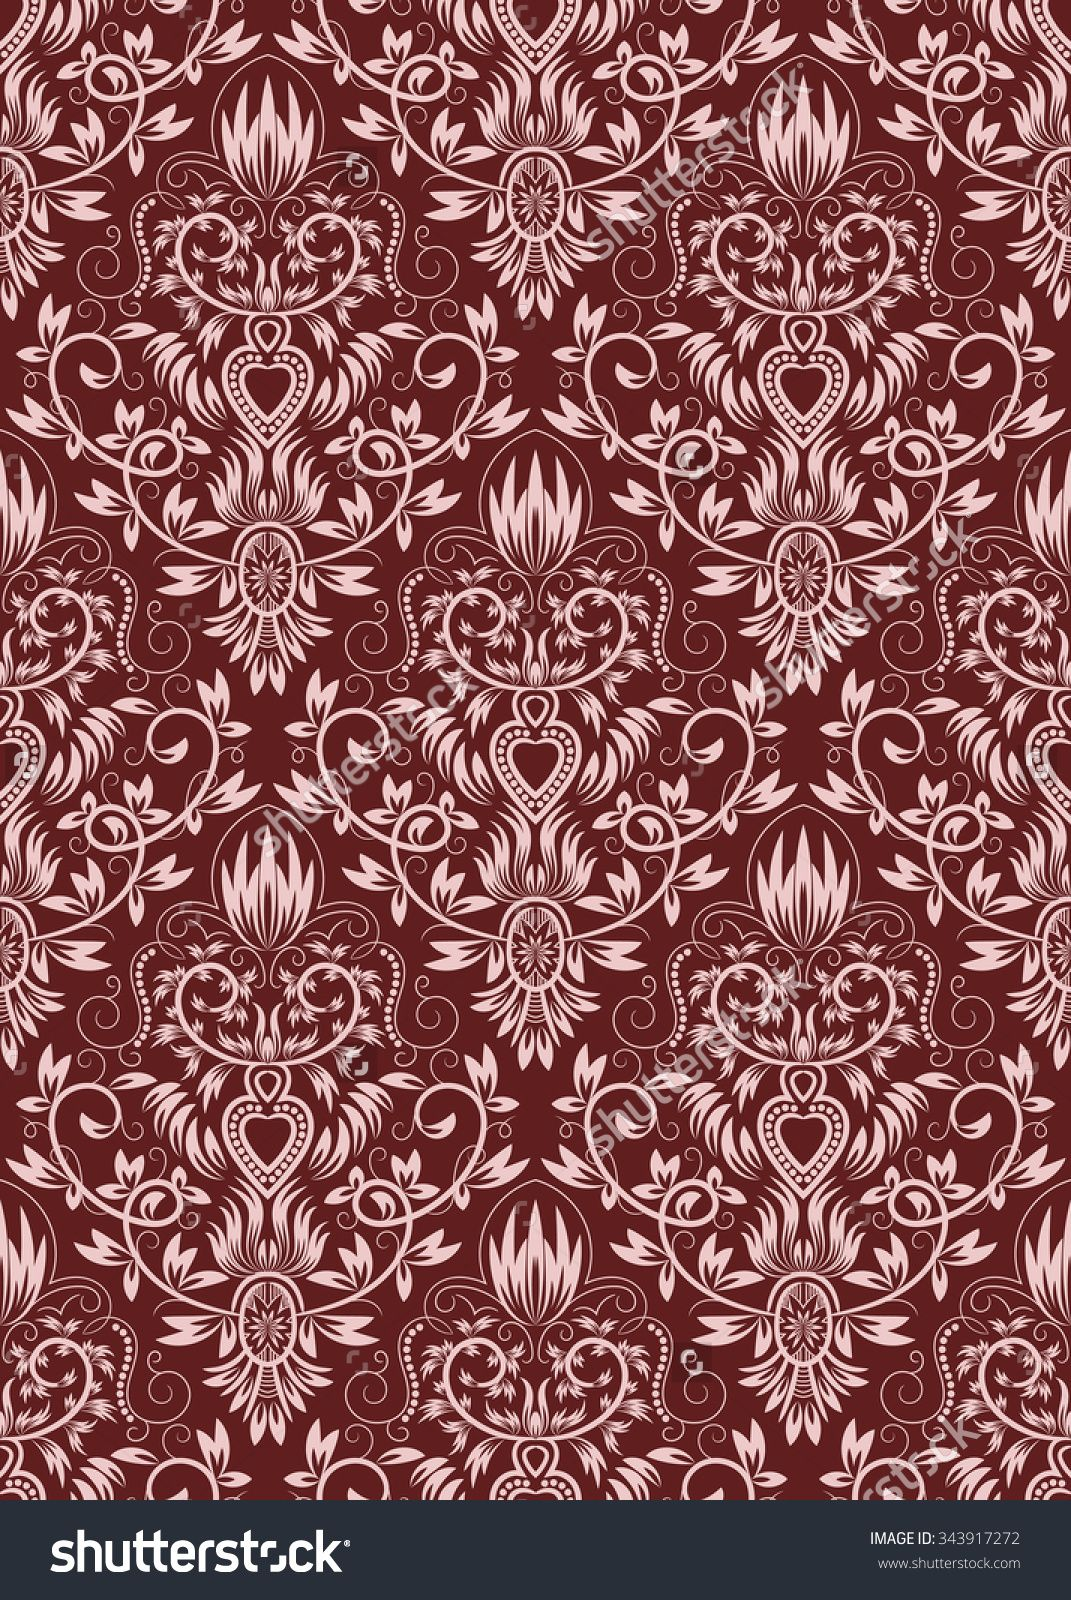 Damask seamless pattern repeating background burgundy floral burgundy floral ornament in baroque style dailygadgetfo Gallery